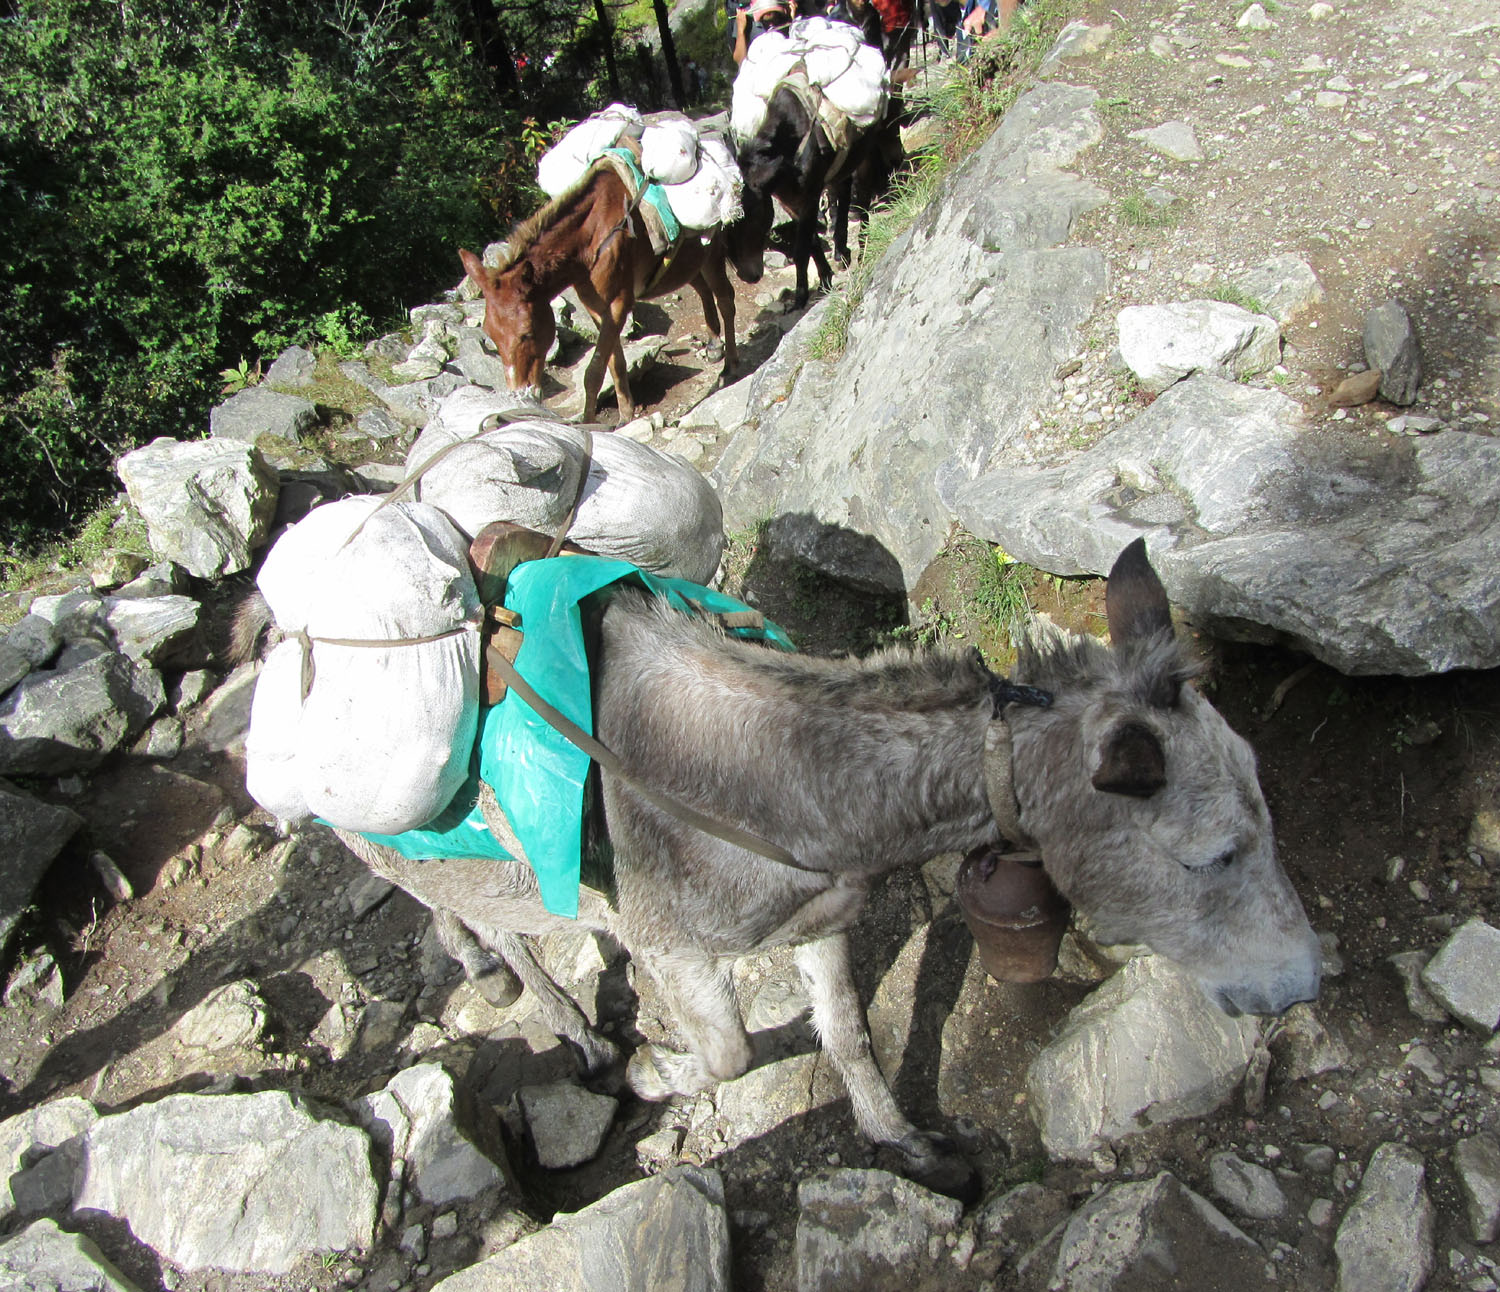 Nepal-Everest-Region-Trek-Day-07-Beasts-Of-Burden